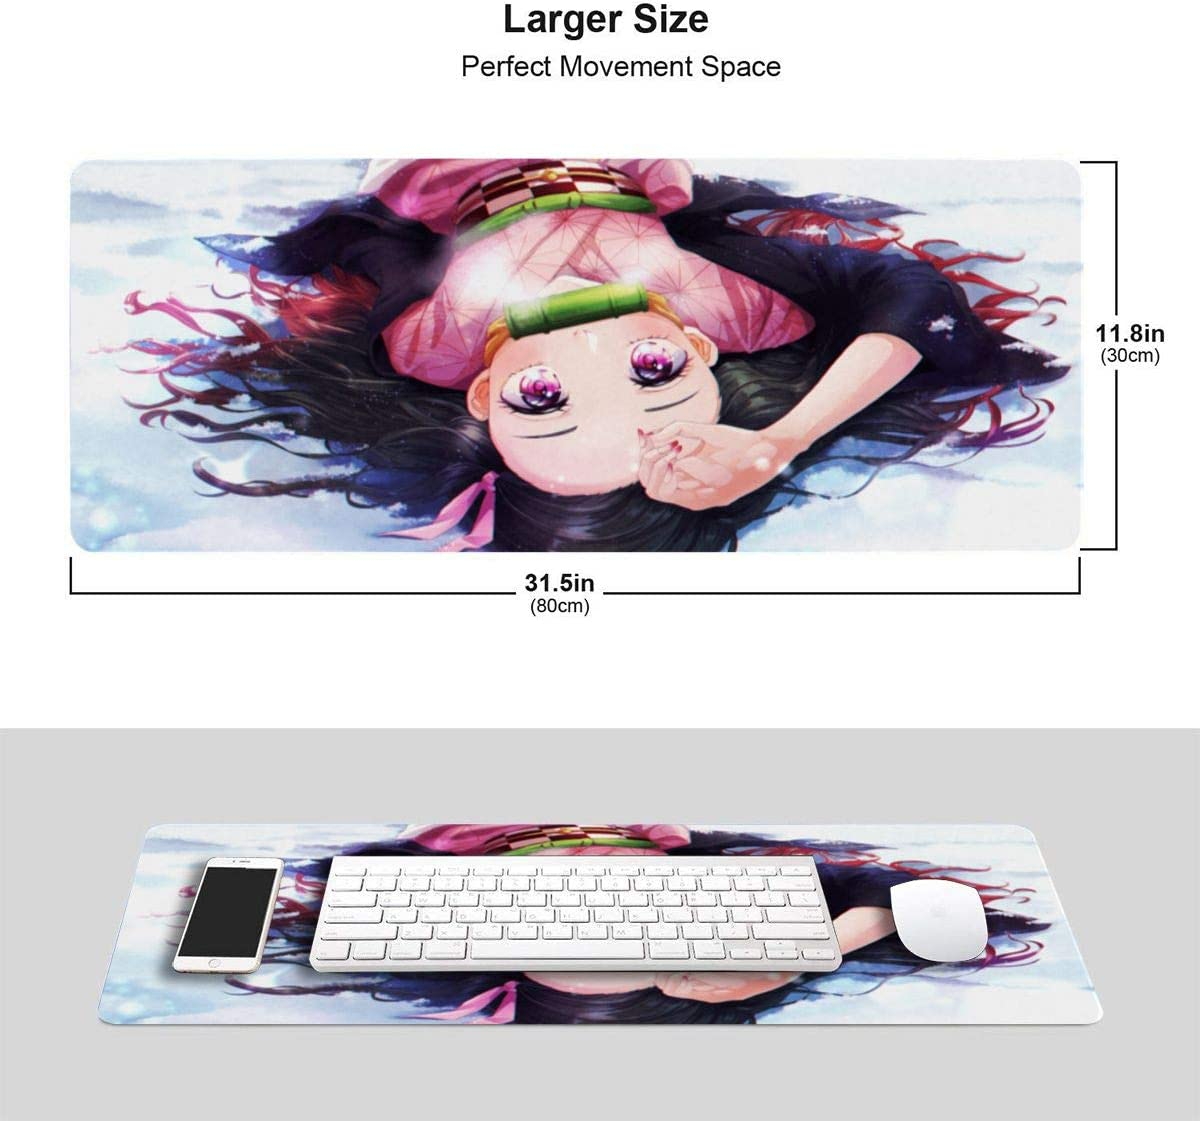 Nezuko Cute Kimetsu No Yaiba 11.8x31.5 in in-inch Large-Scale Competitive Game/&Office/&Console Mouse Pad